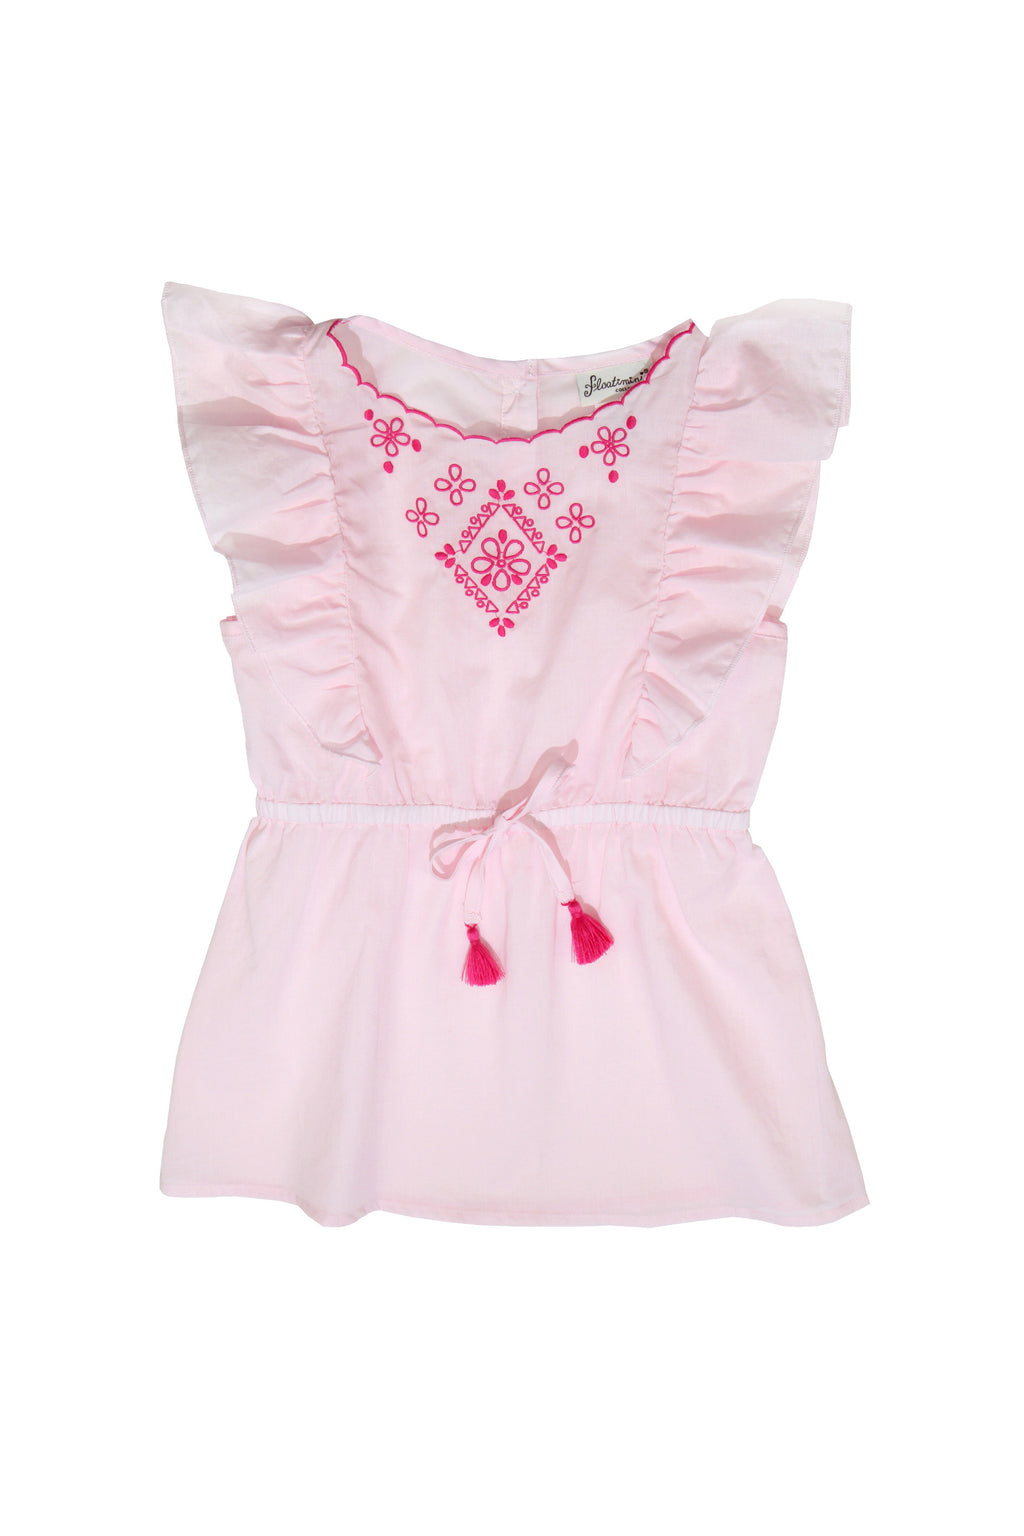 Embroidered Side Ruffle Cover-up Dress, pink